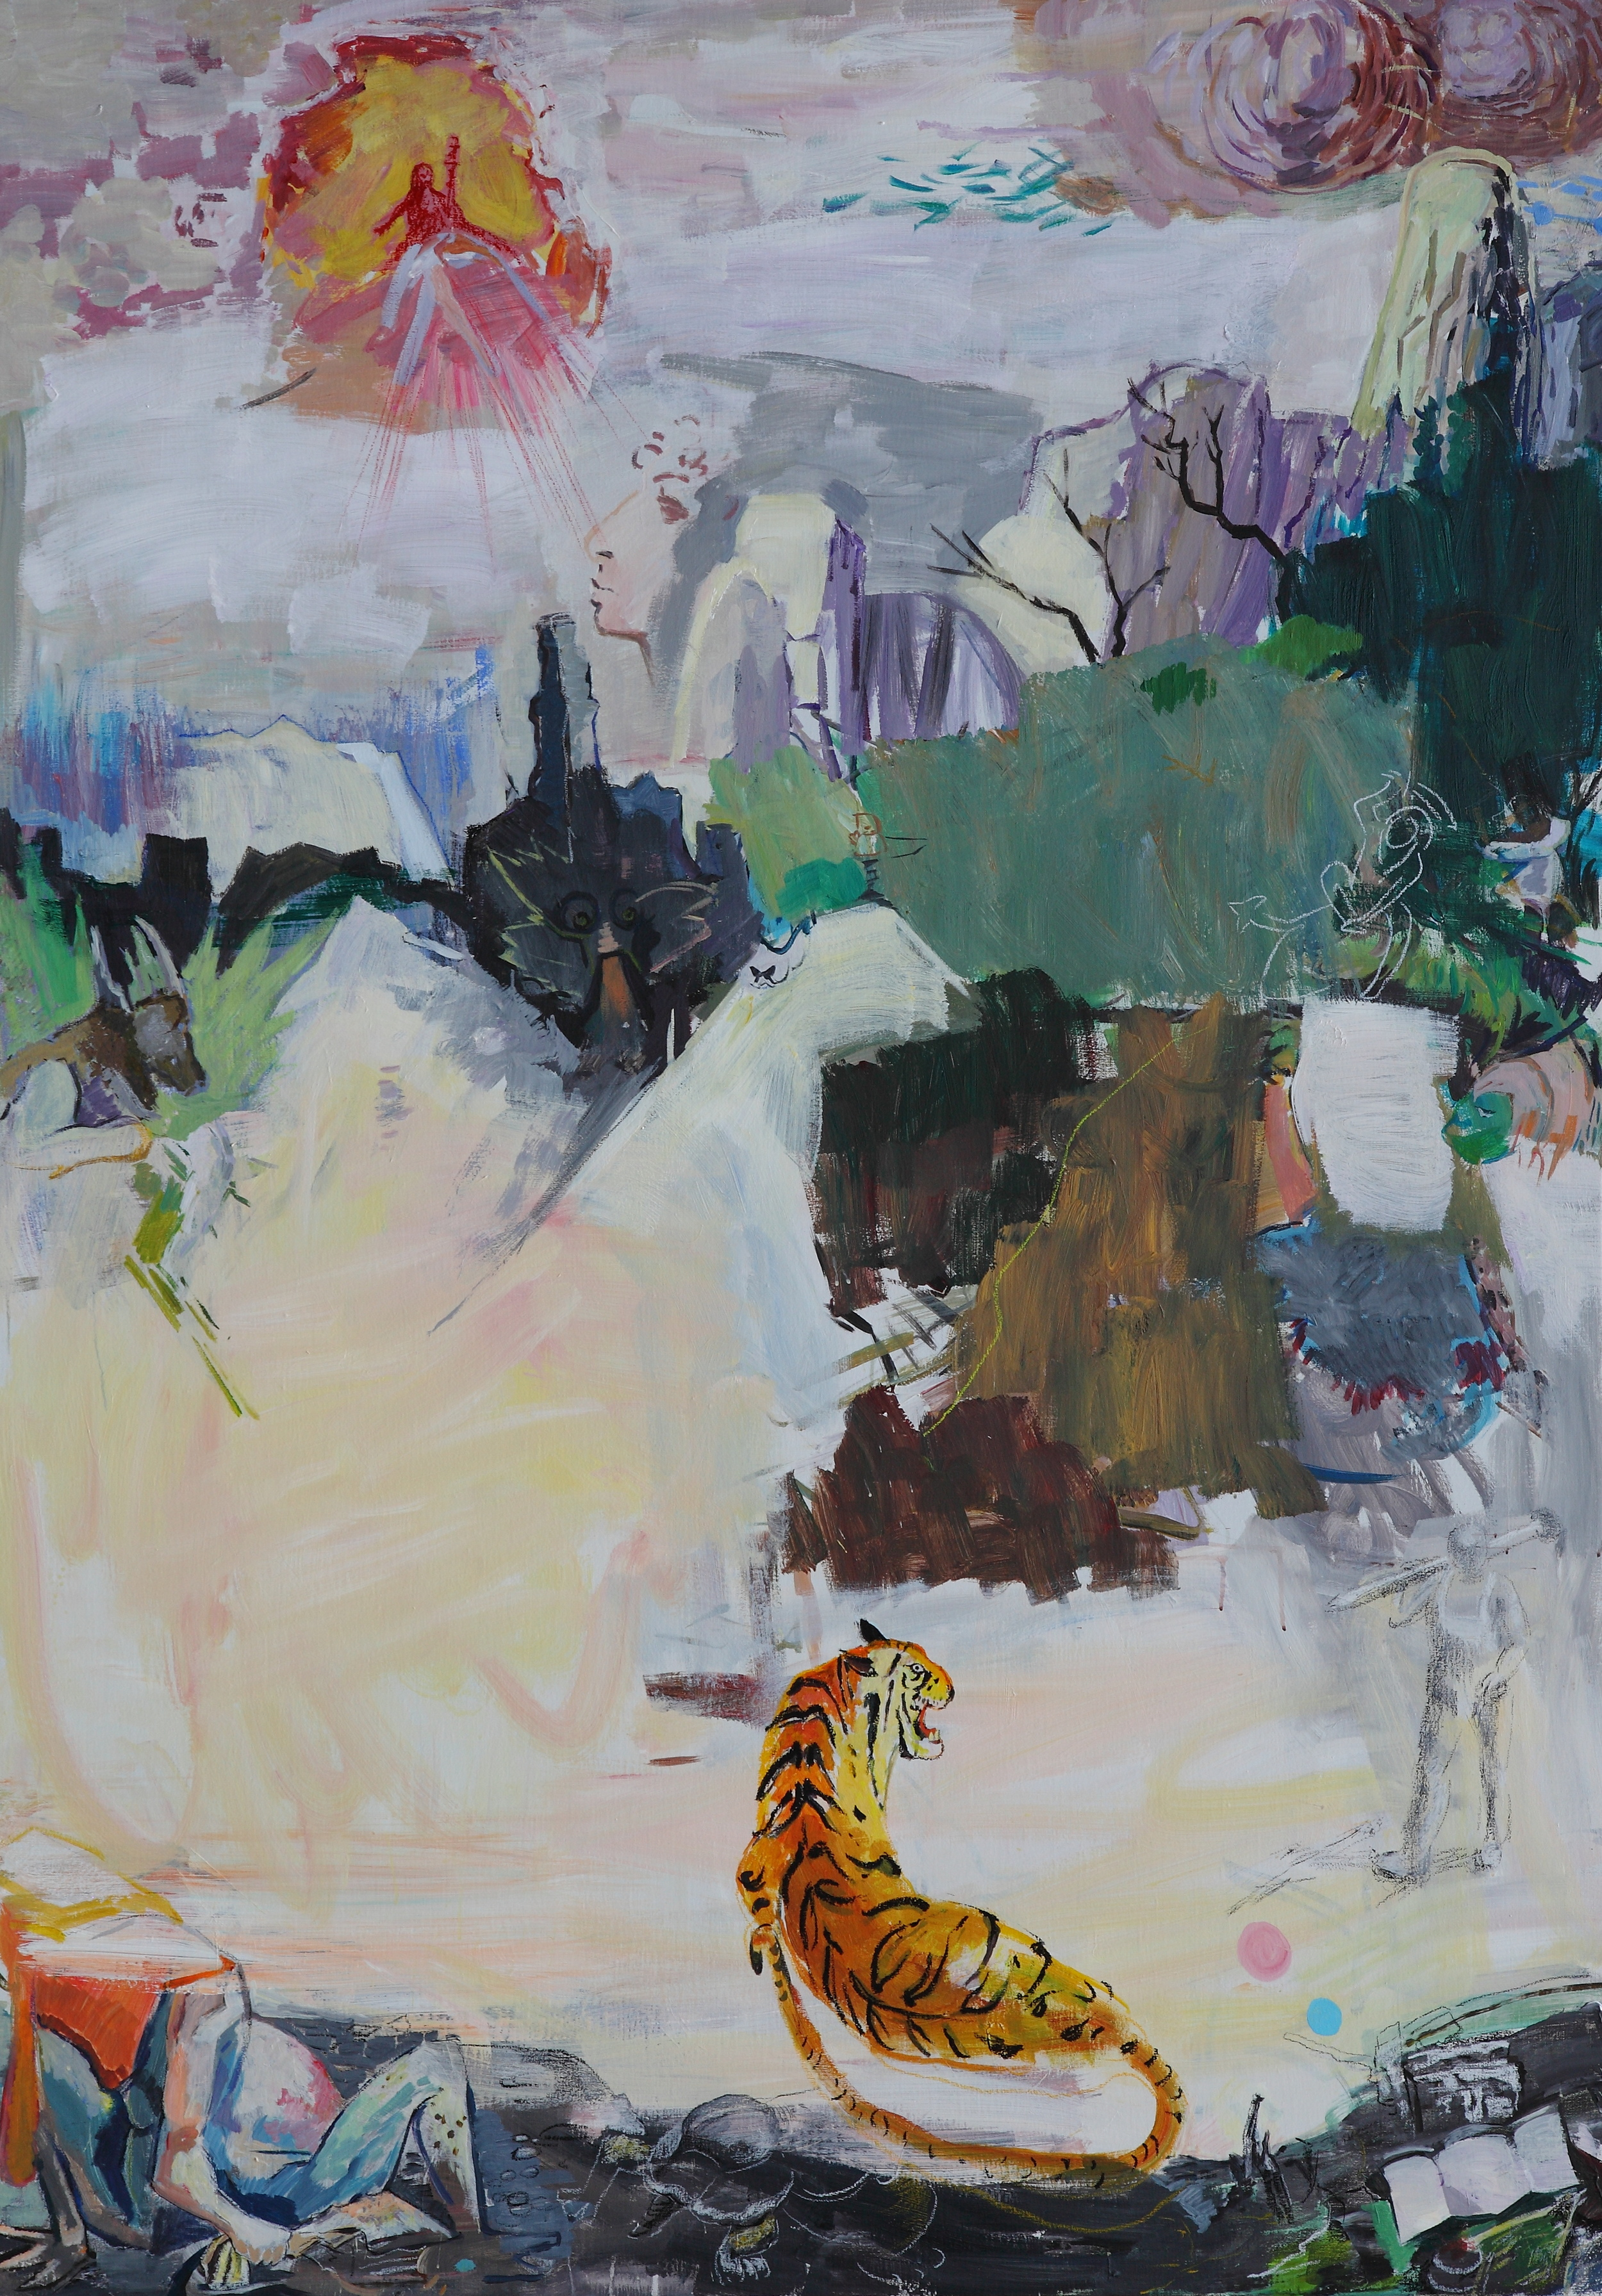 Berg in China , 2015 Mixed media on canvas 213 x 152 cm